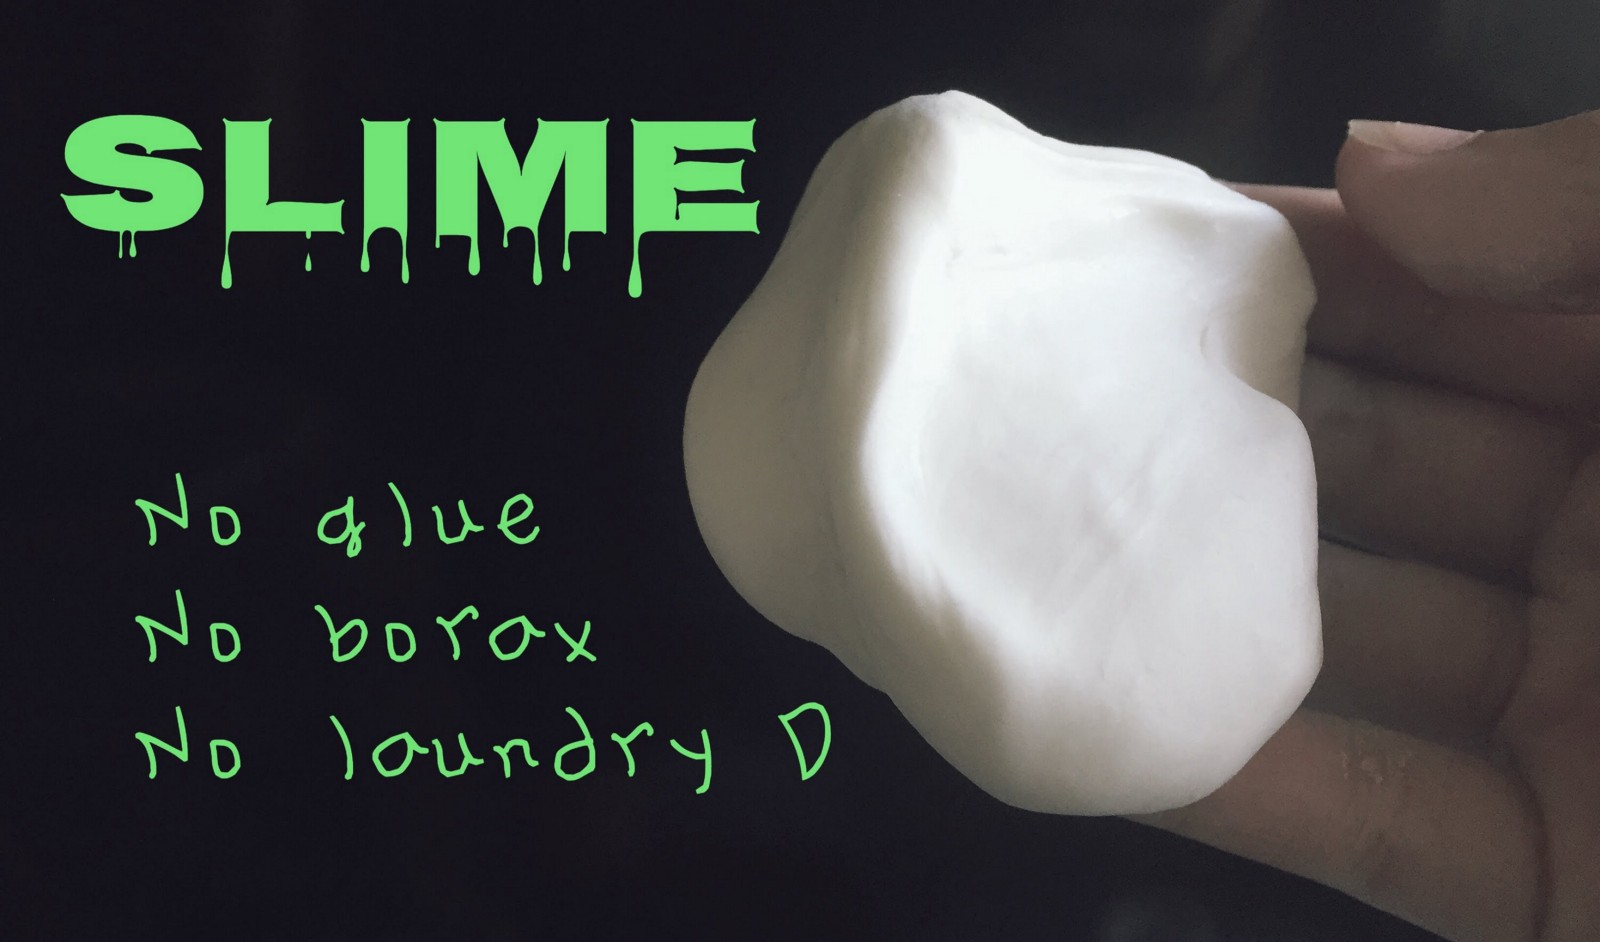 Video how to make slime wo glue borax laundry detergent how to make slime wo glue borax laundry detergent ccuart Image collections